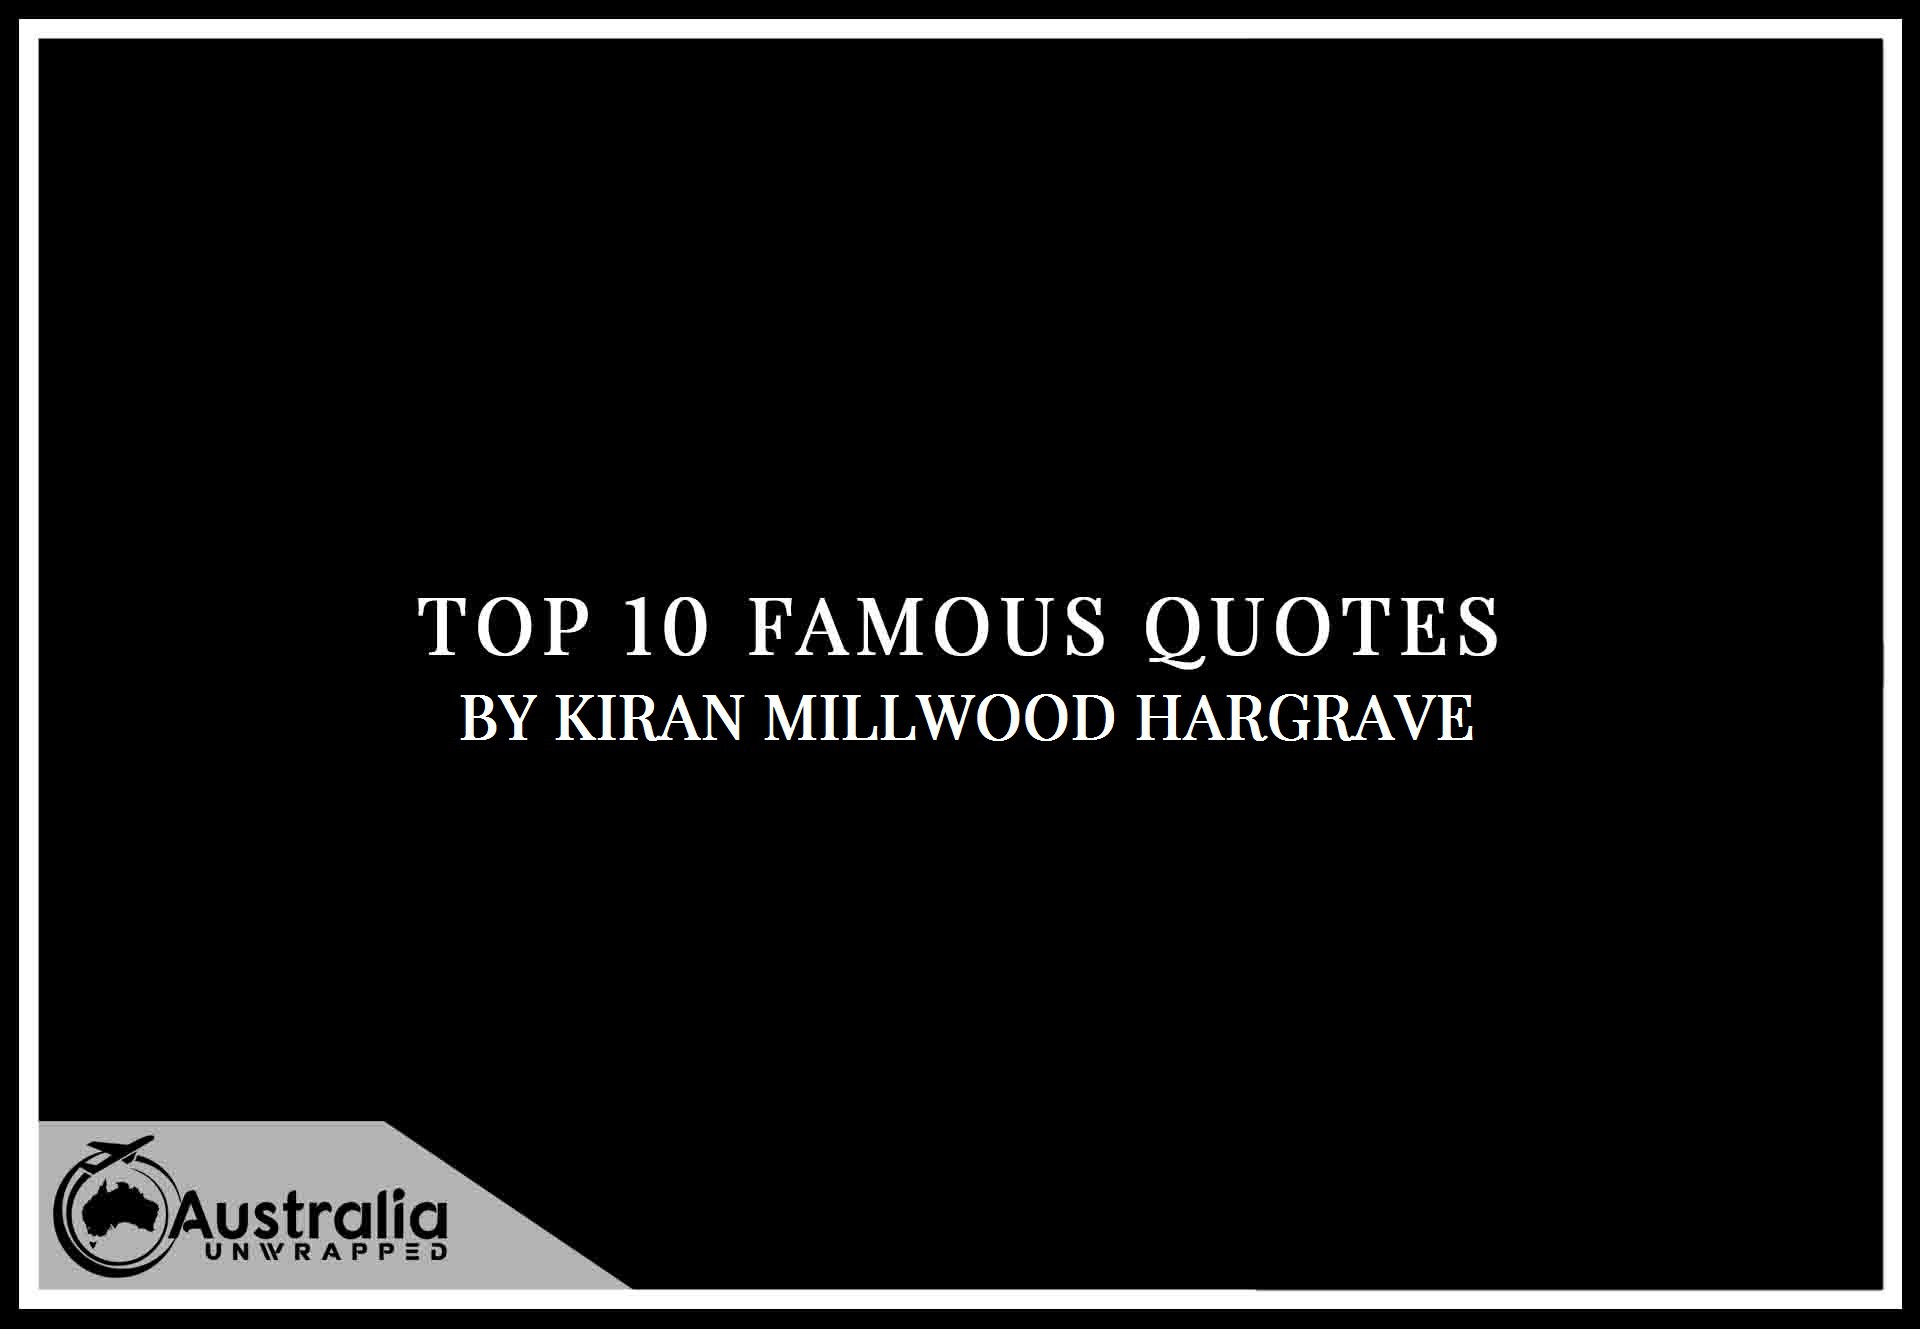 Kiran Millwood Hargrave's Top 10 Popular and Famous Quotes